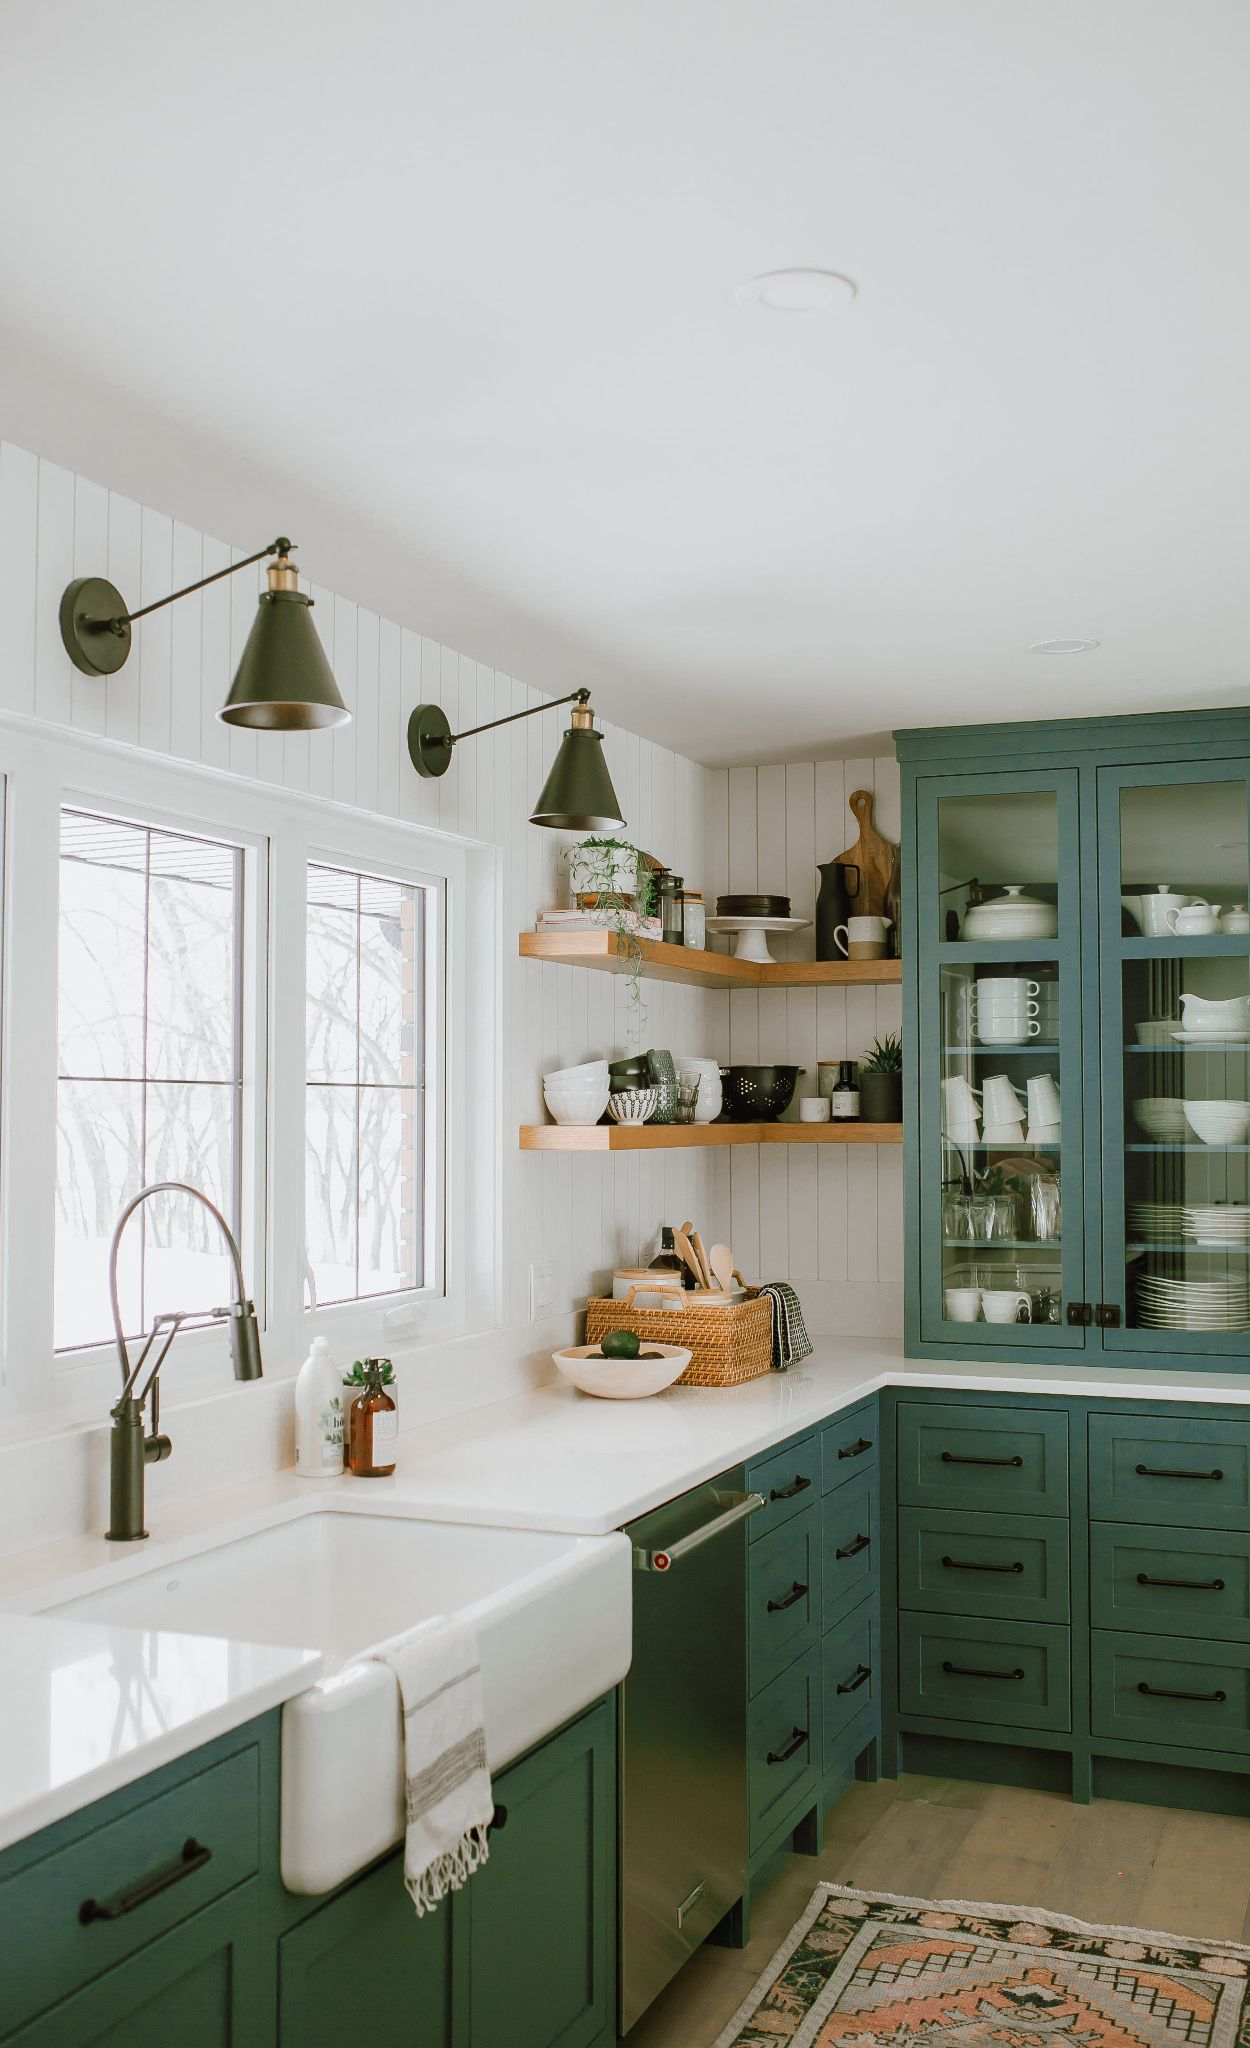 Cambria Newport paired with green cabinets and open shelving.